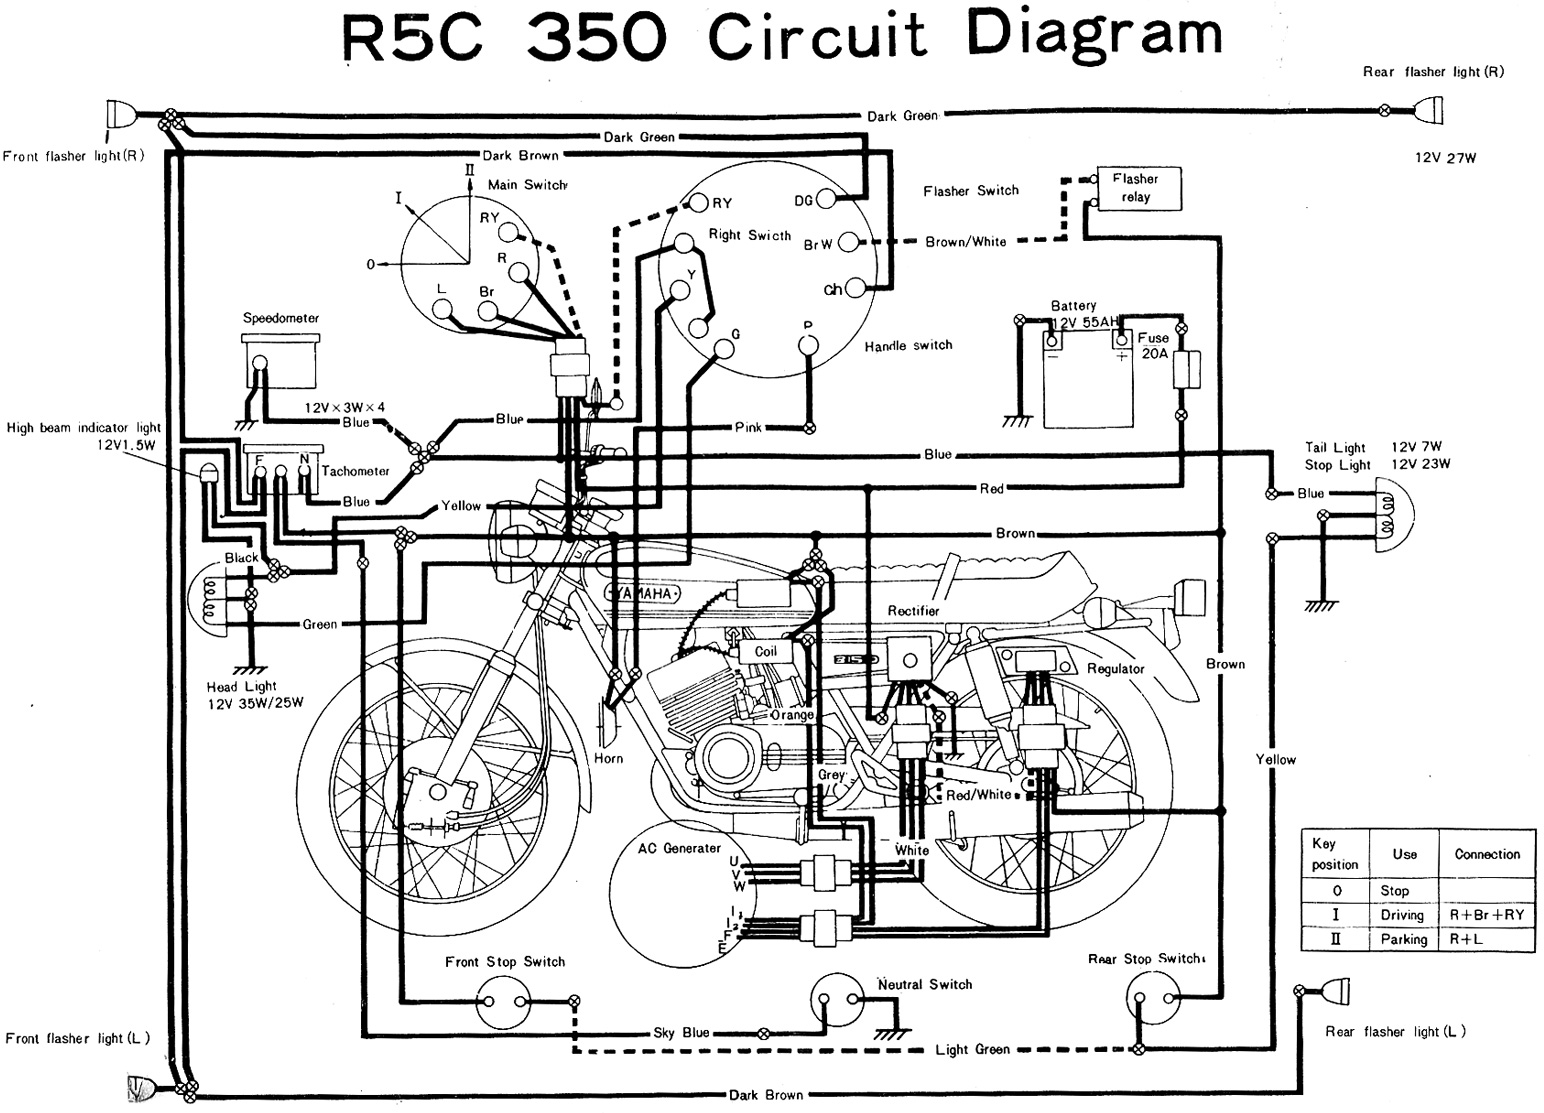 Yamaha RD350 R5C Wiring Diagram yamaha rd350 r5c wiring diagram evan fell motorcycle worksevan yamaha rd 350 wiring diagram at nearapp.co